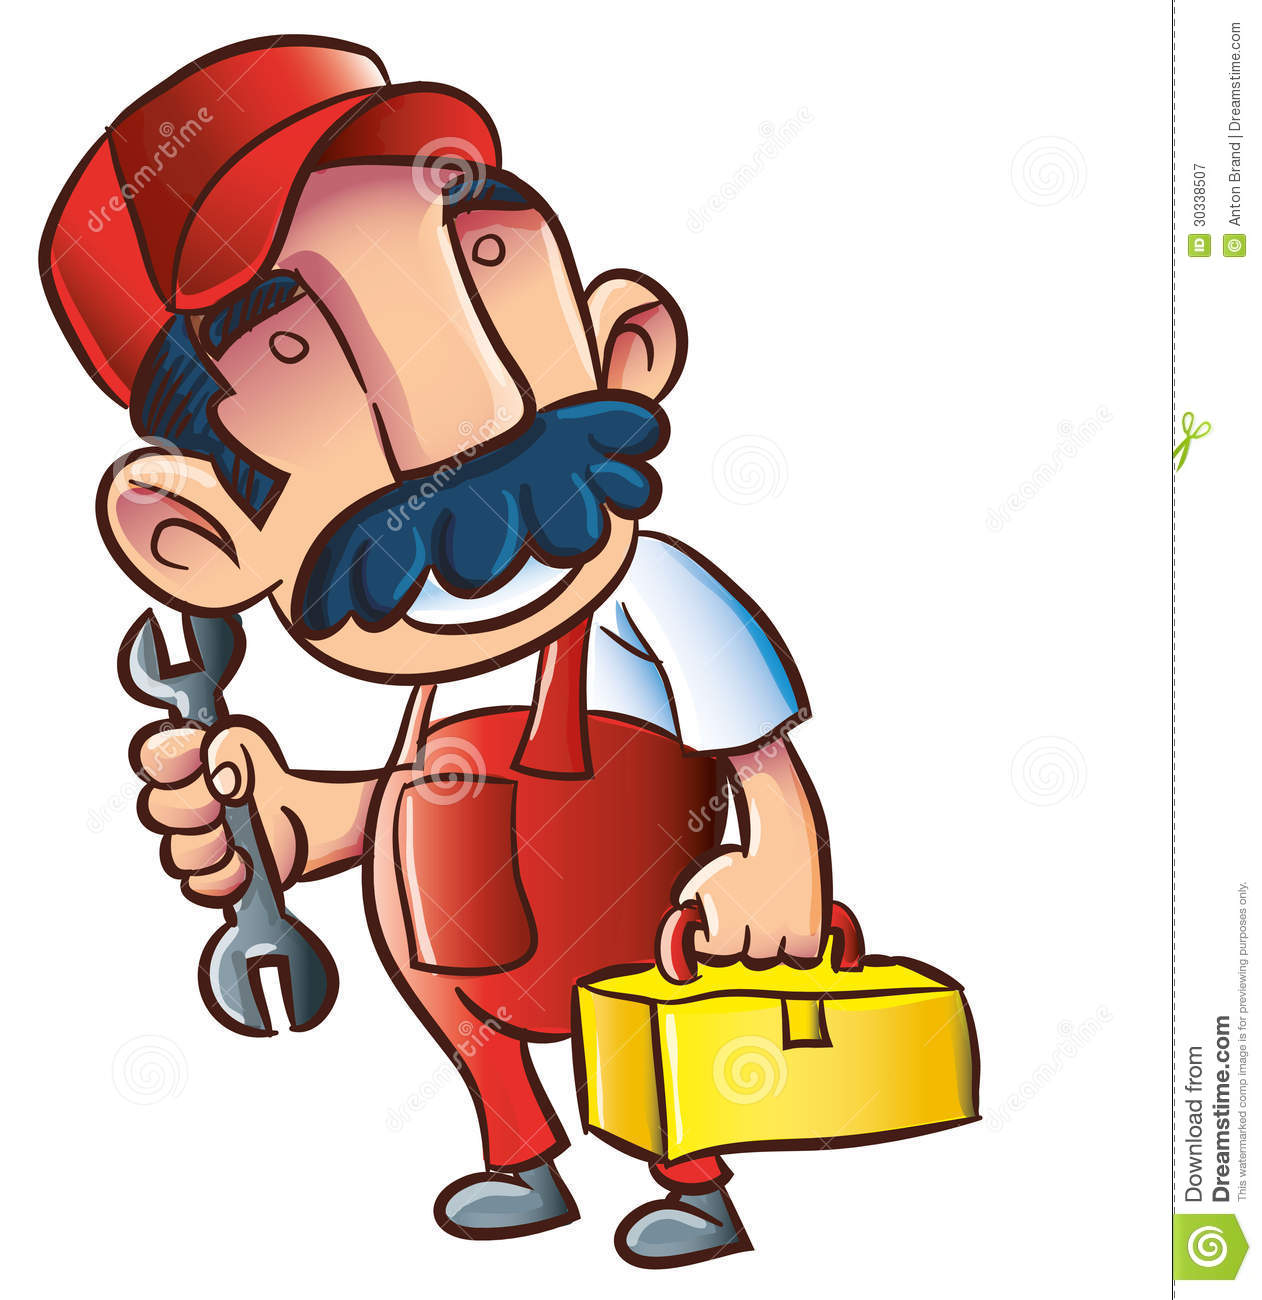 Cartoon Plumber With Wrench And Toolkit Royalty Free Stock ...